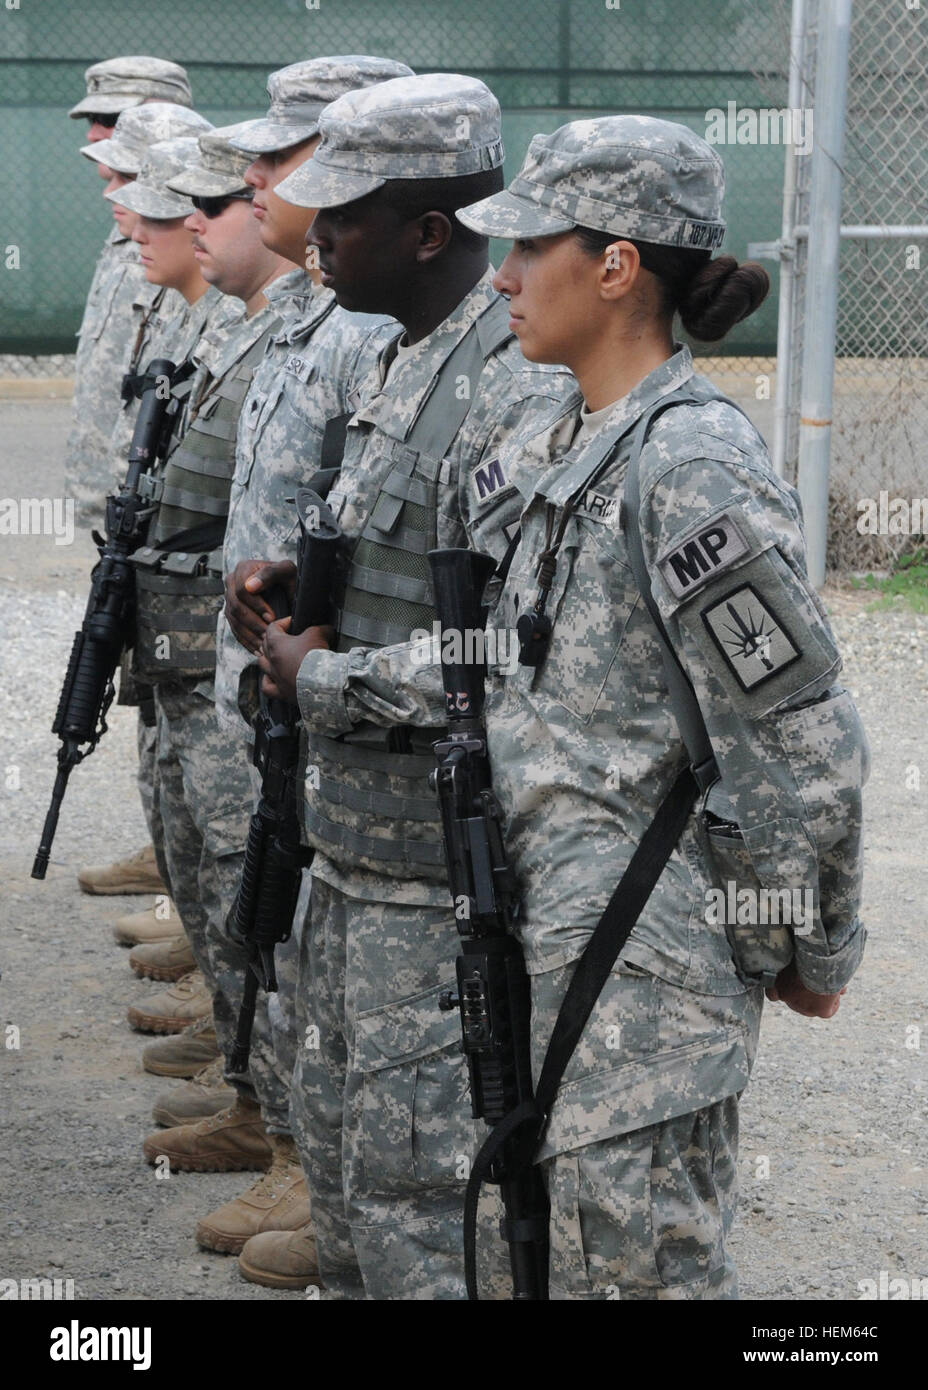 national guard military police